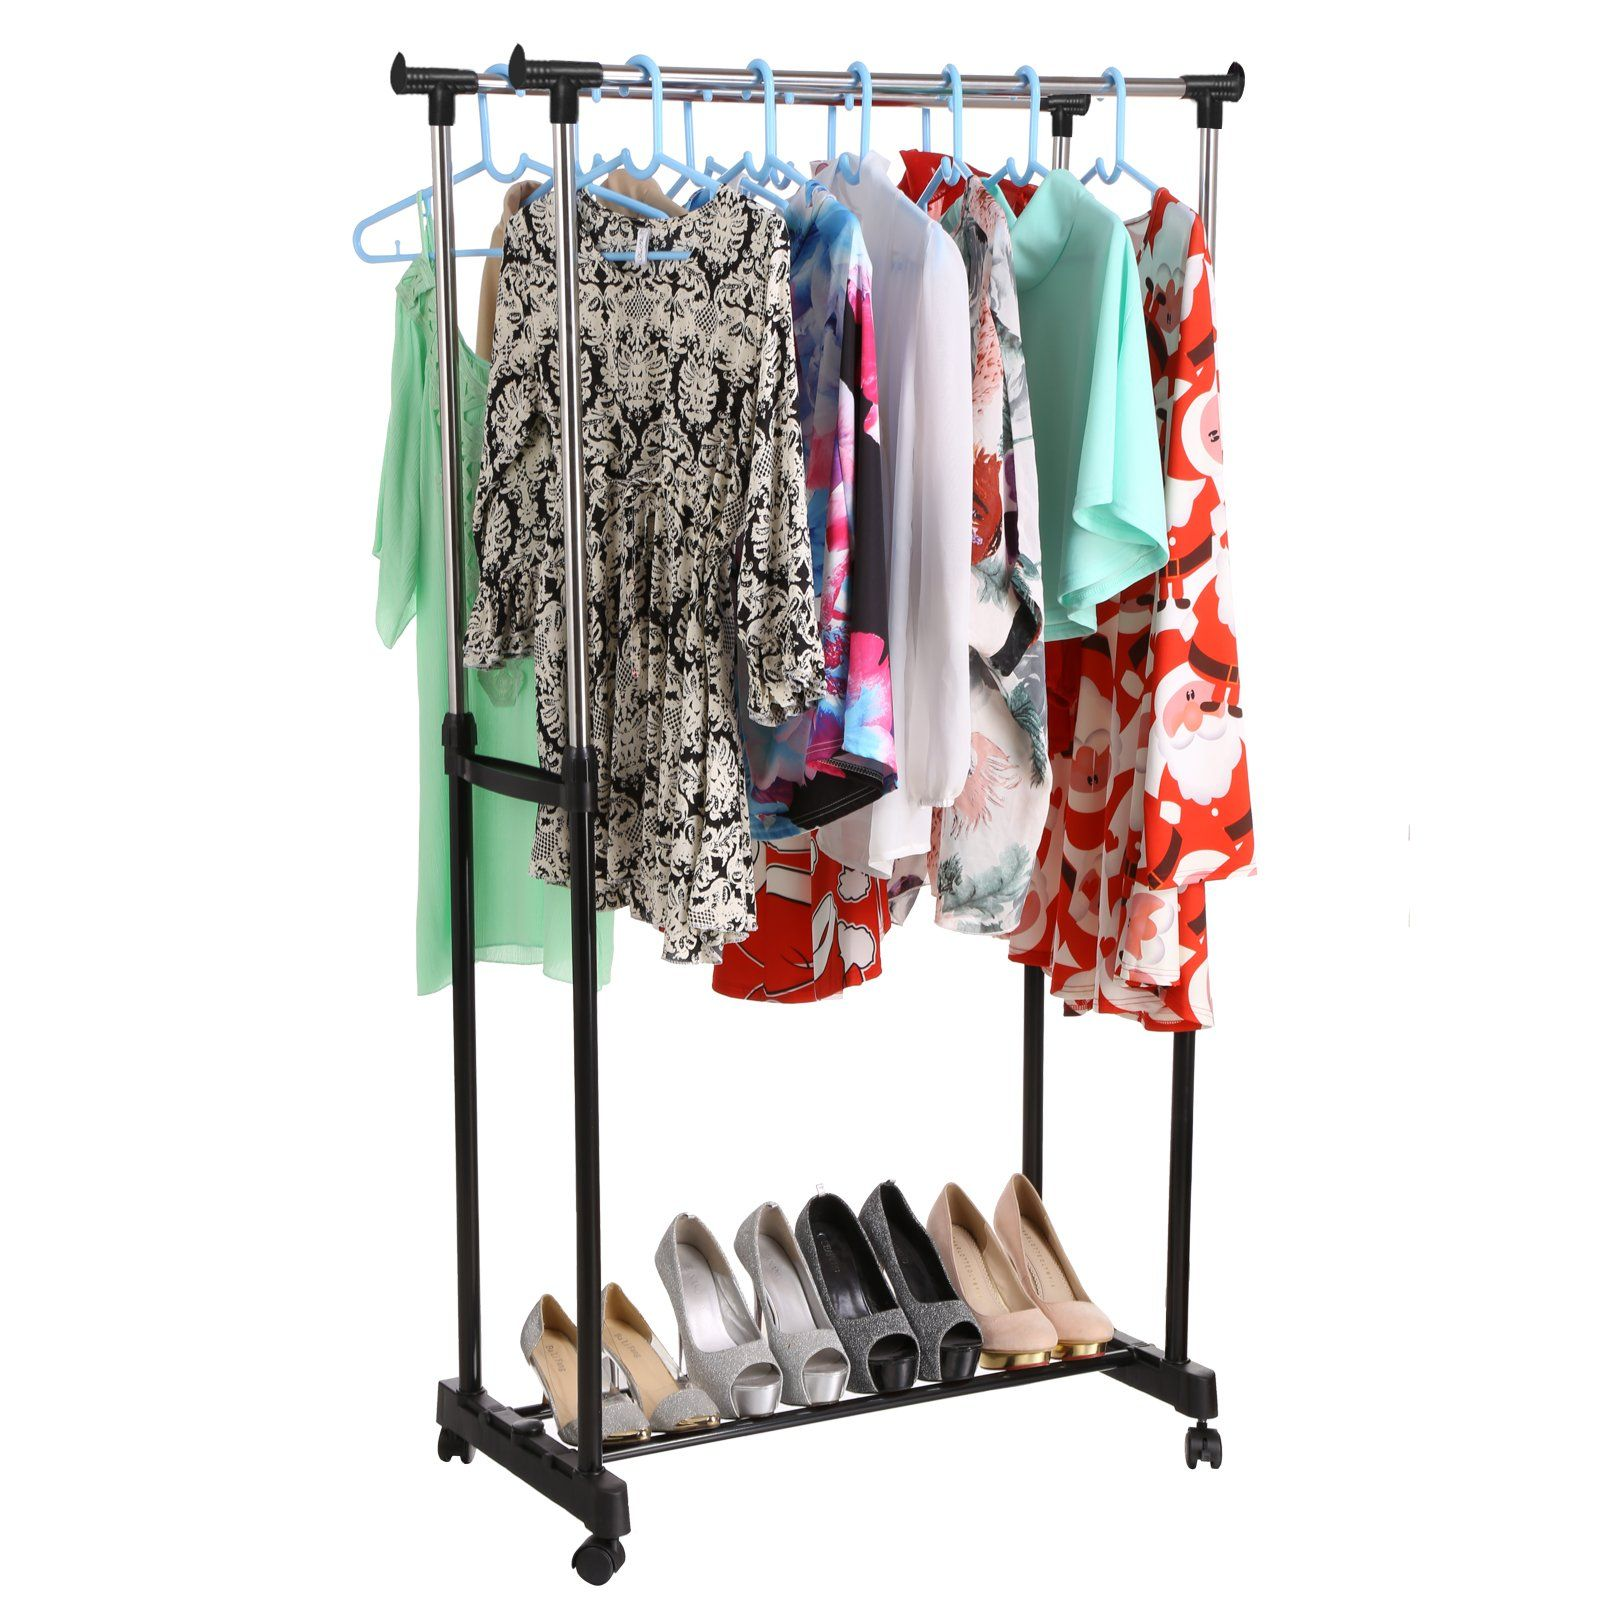 Homdox Clothes Drying Rack Heavy Duty Double Pole Rail Rod Adjustable Garment Rack Clothing Rack Outdoor Indoor Clothes Rack Hanger With 4 360 Degree Wheels